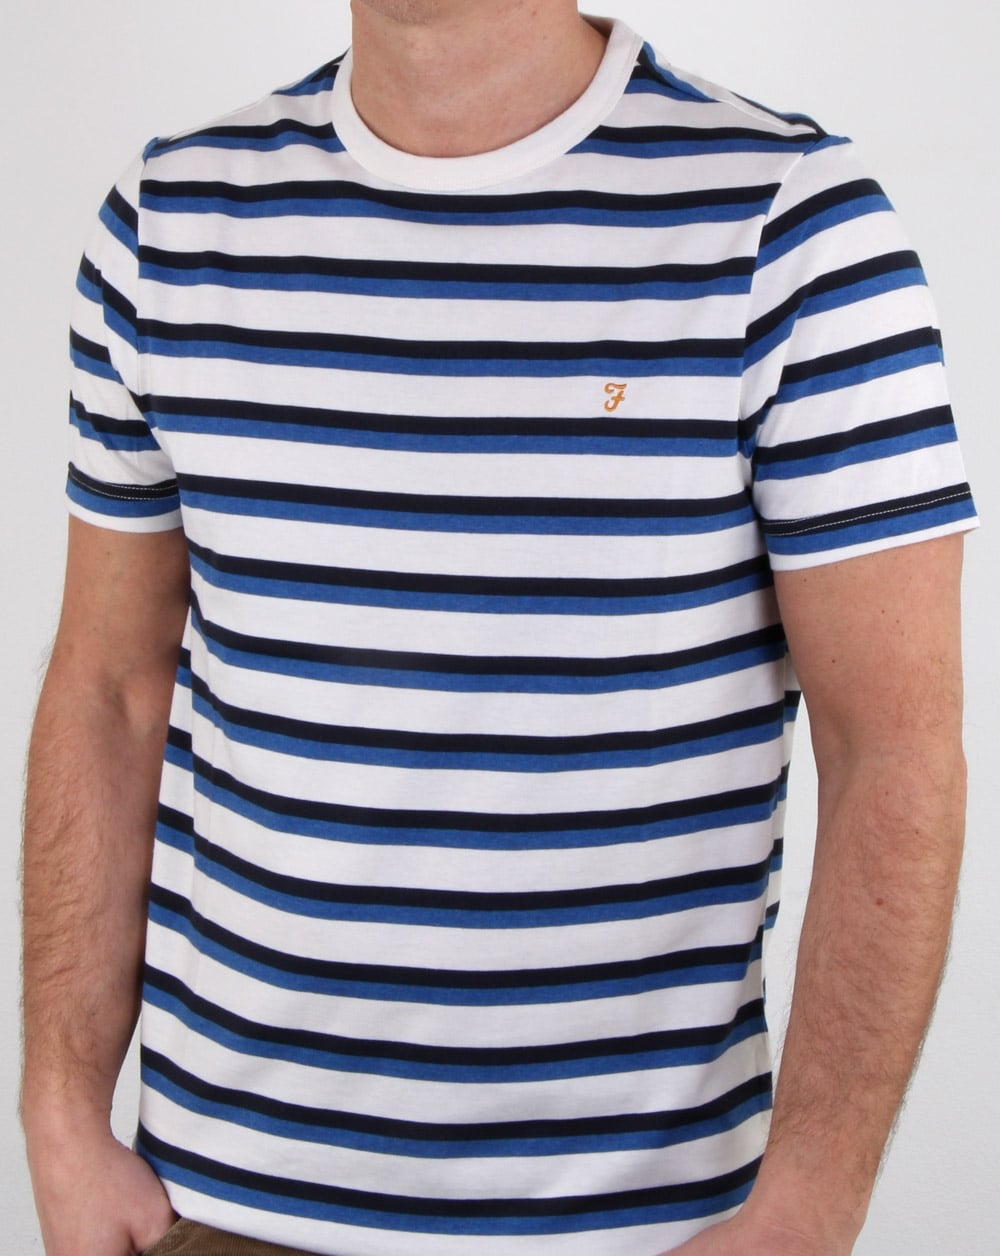 459349439 Farah Factory T Shirt White, Mens, Cotton, Crew Neck, Stripe, Nautical